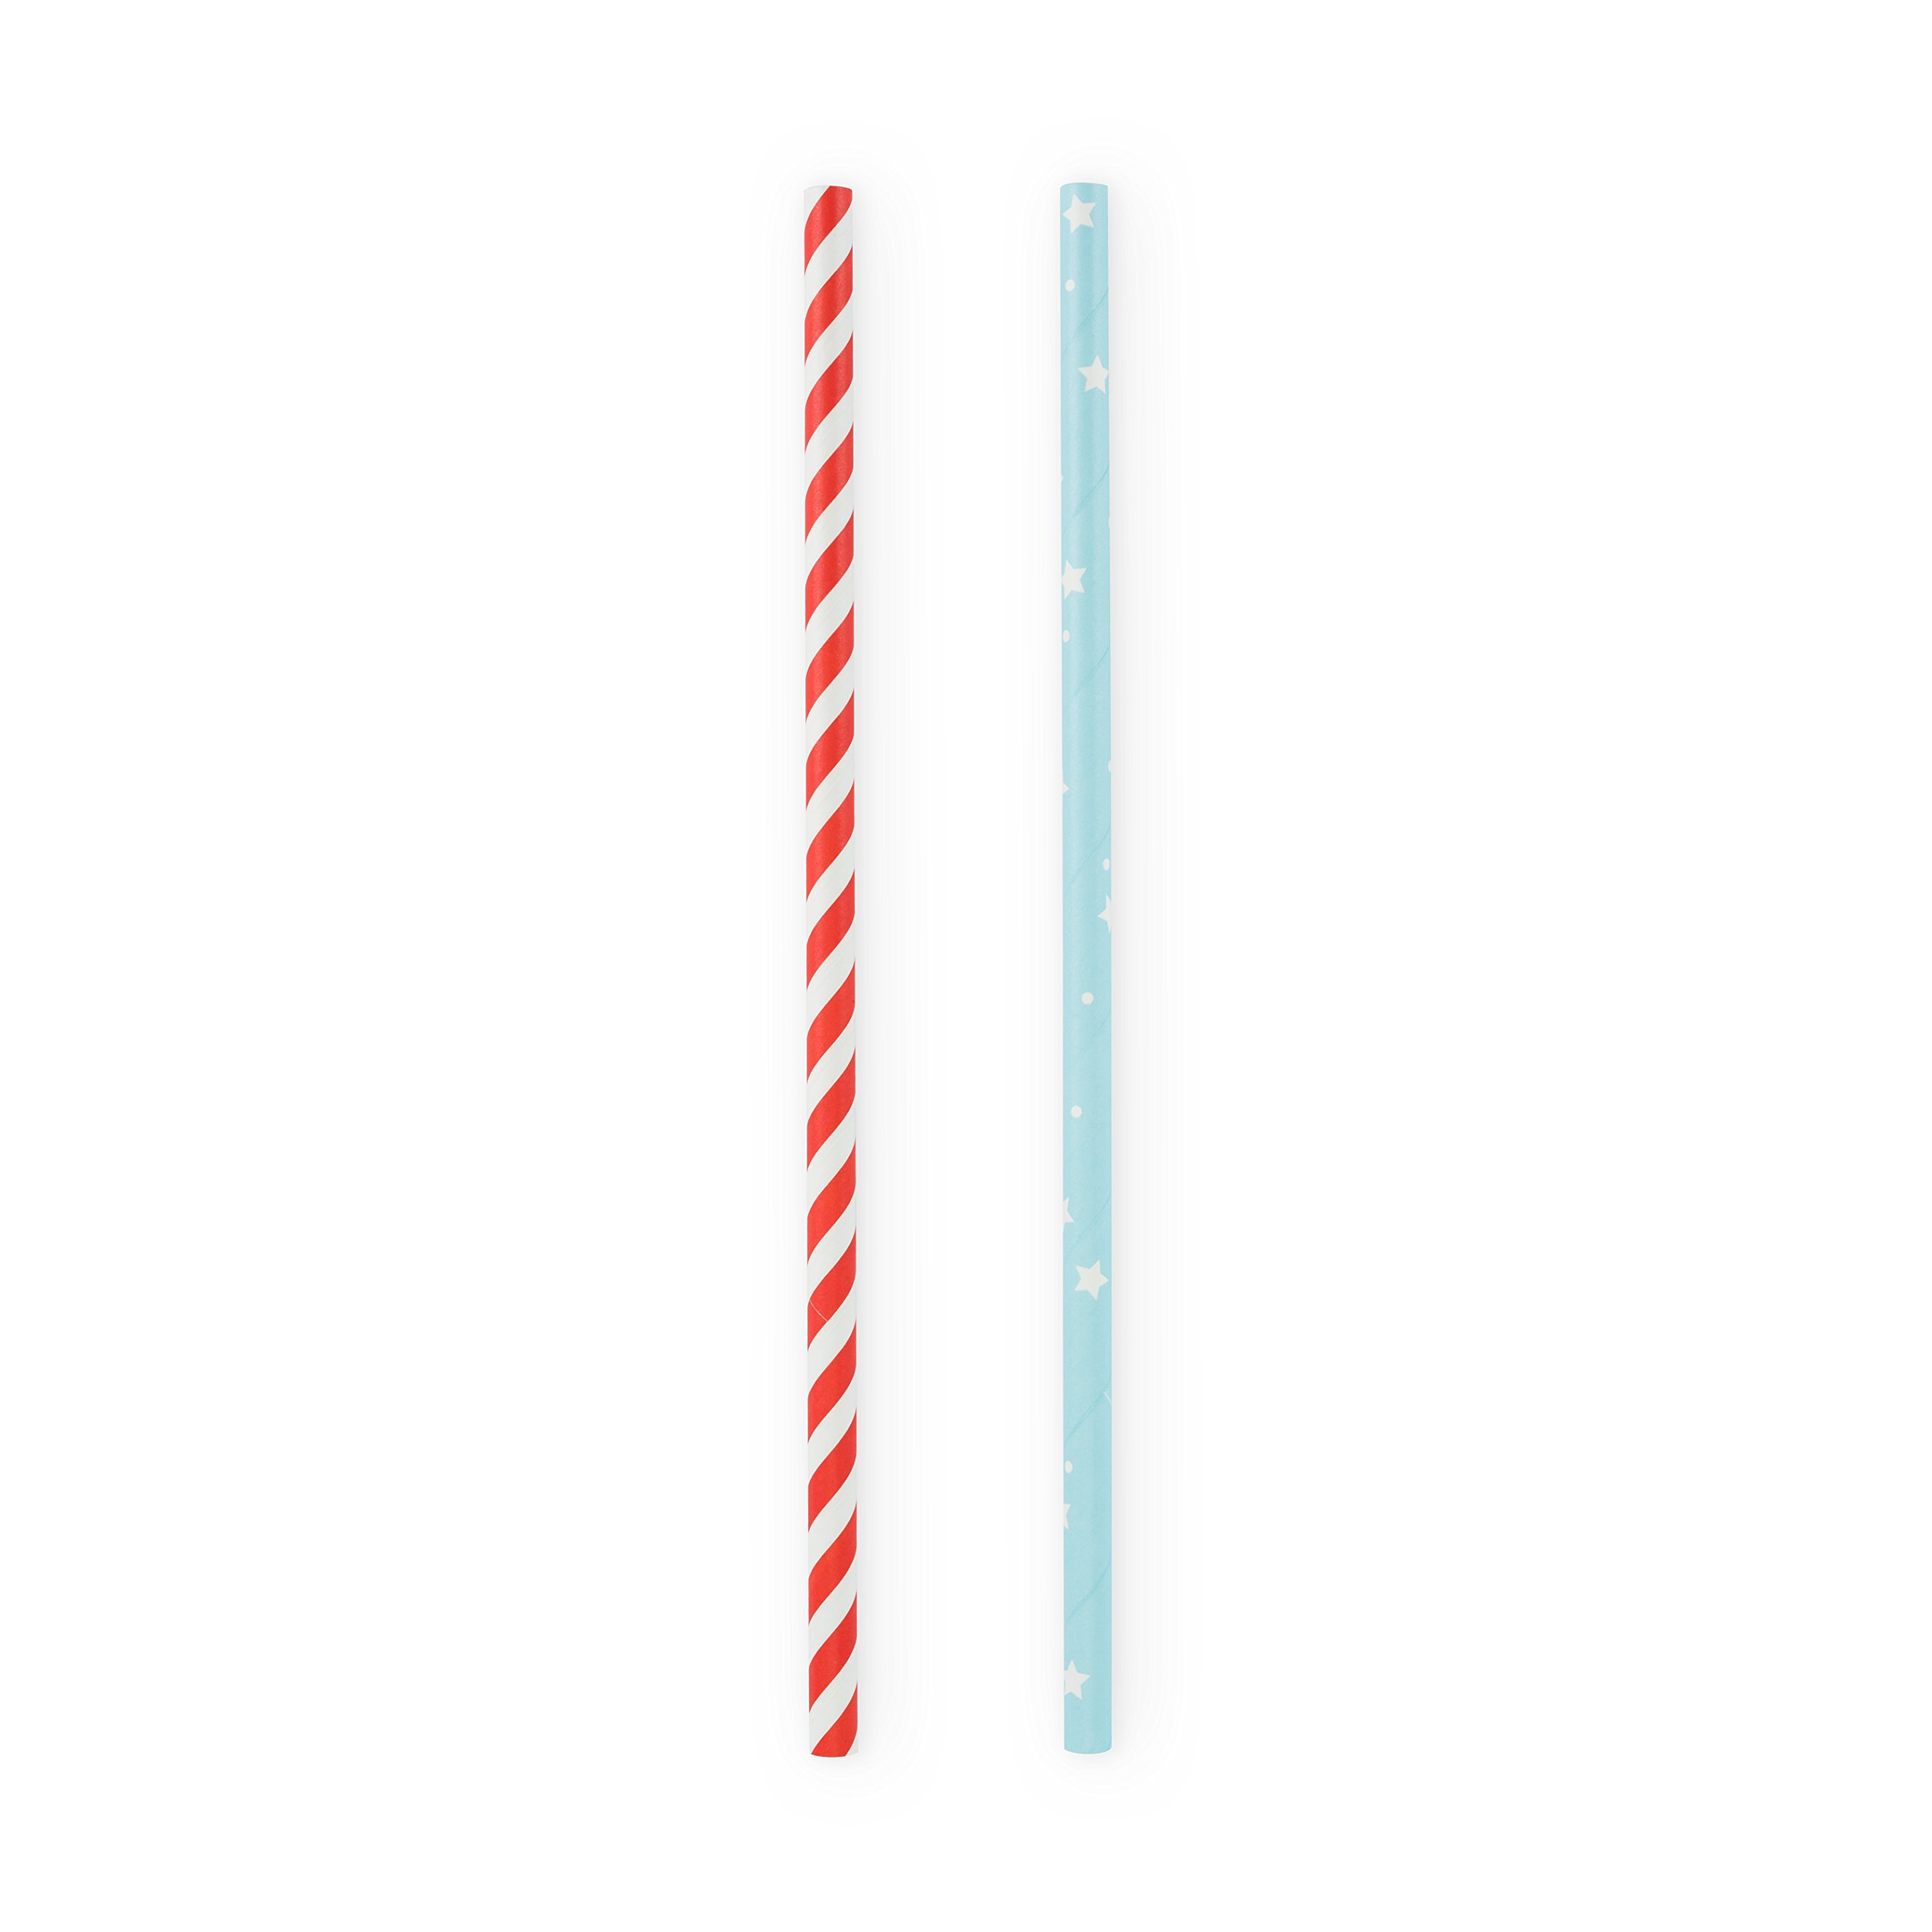 Cakewalk (Party) 6954 Assorted Stars and Stripes Straws, Multi Colored